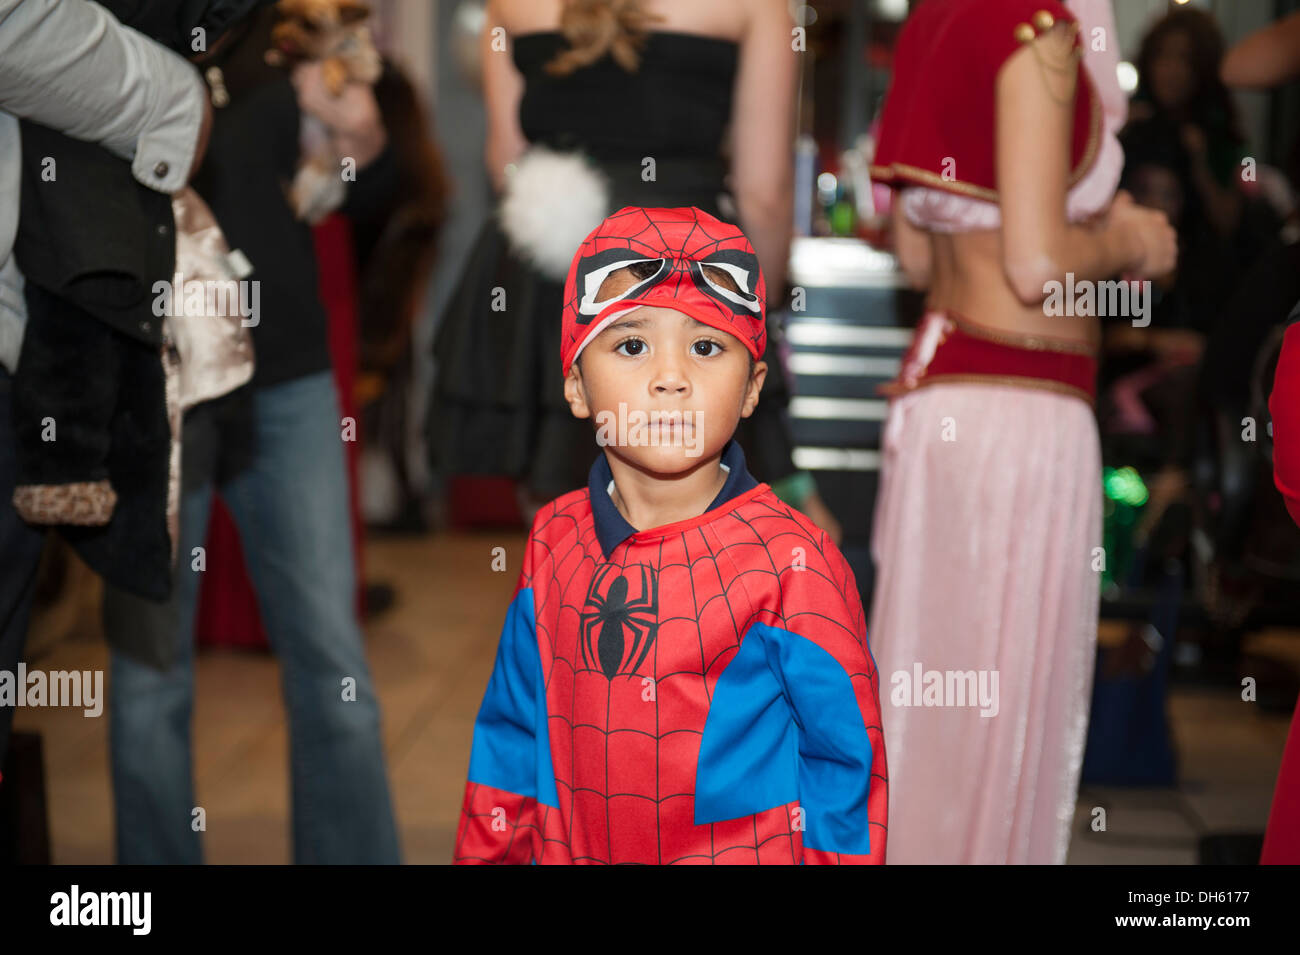 A young, New York City boy dressed as Spider-Man for Halloween. - Stock Image